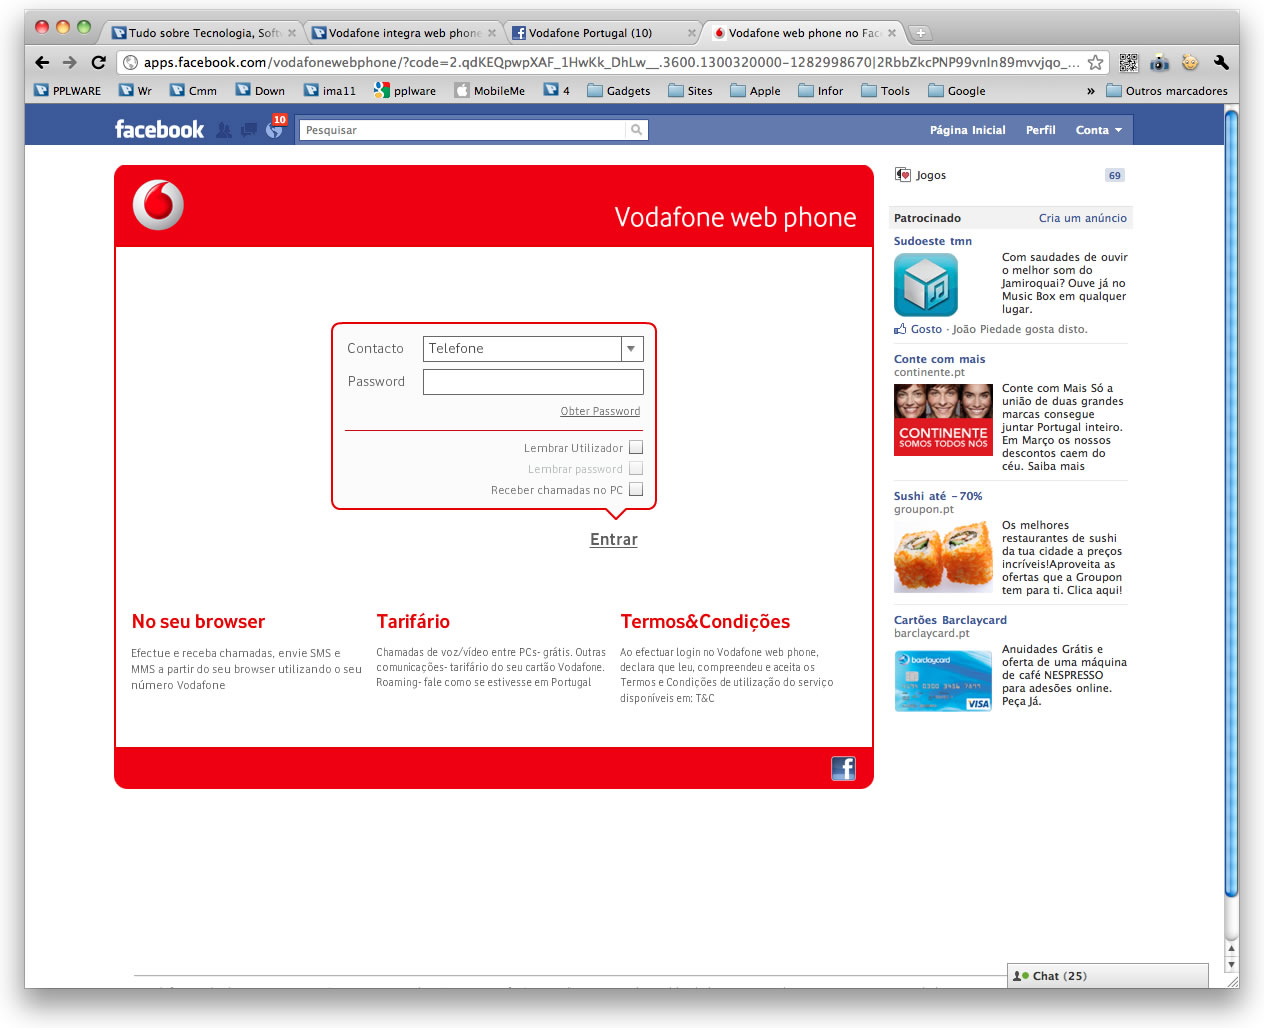 Vodafone integra web phone no Facebook - Pplware